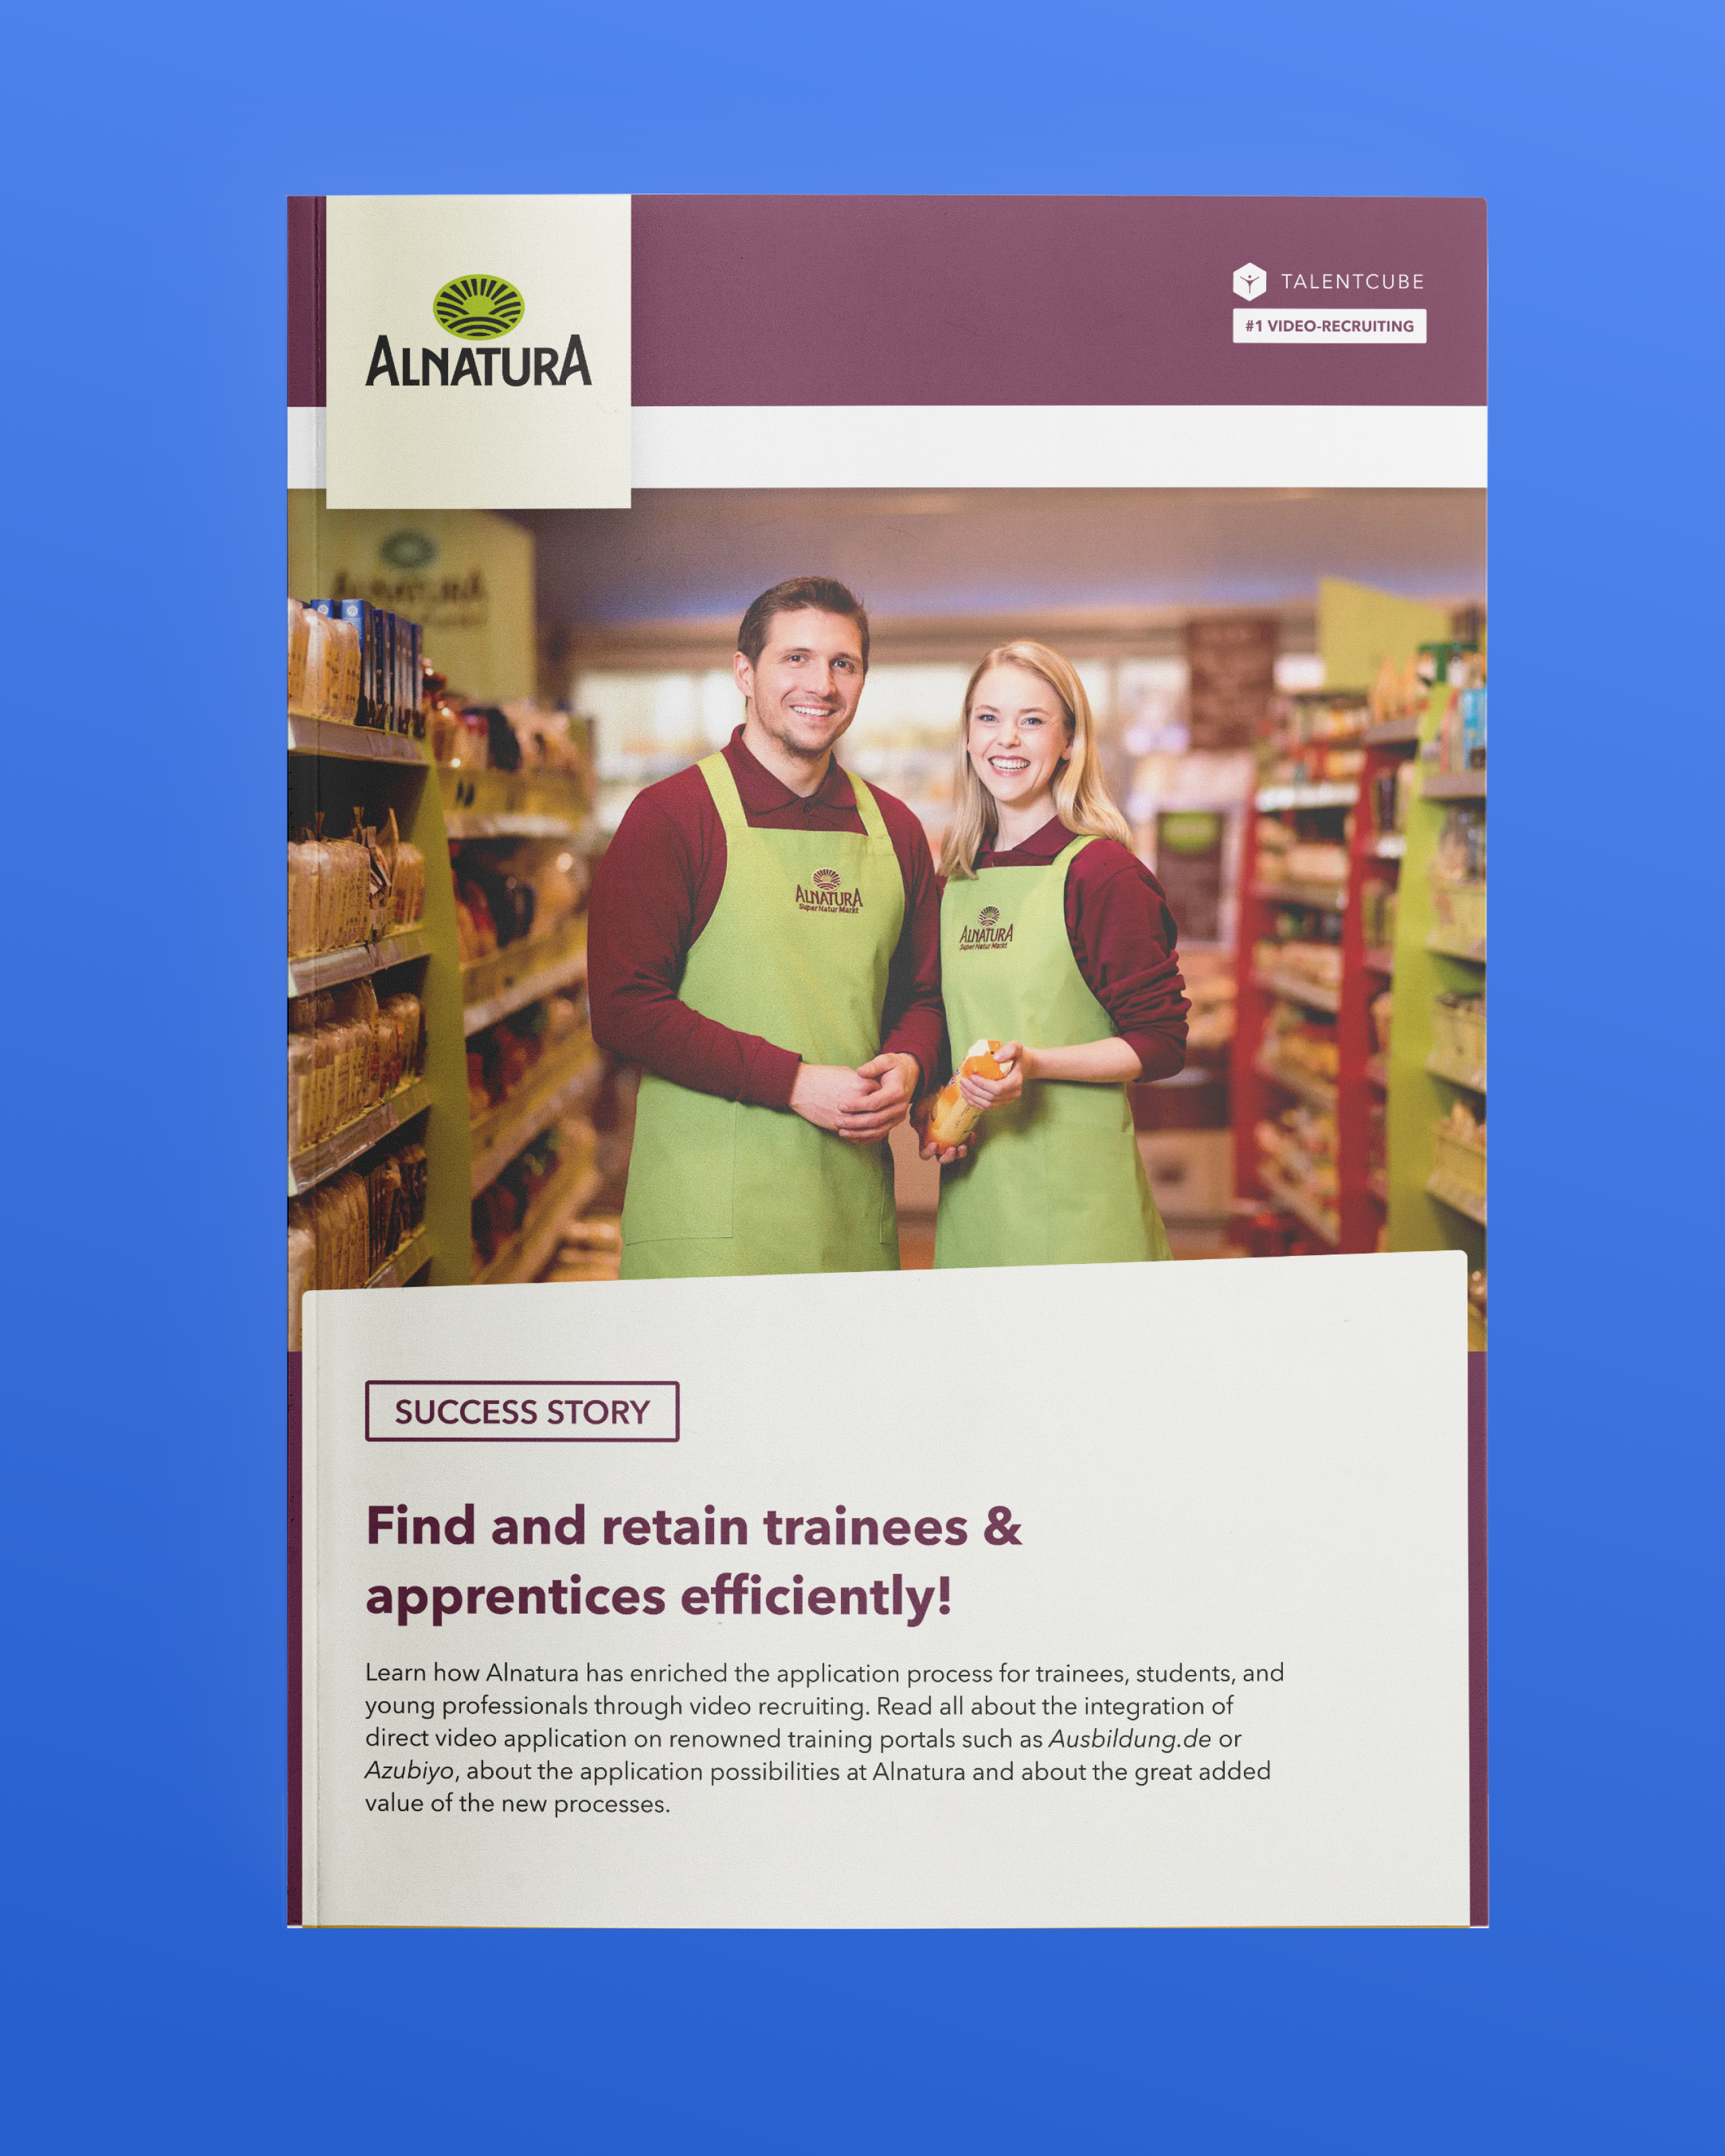 Alnatura – Find and retain trainees & 